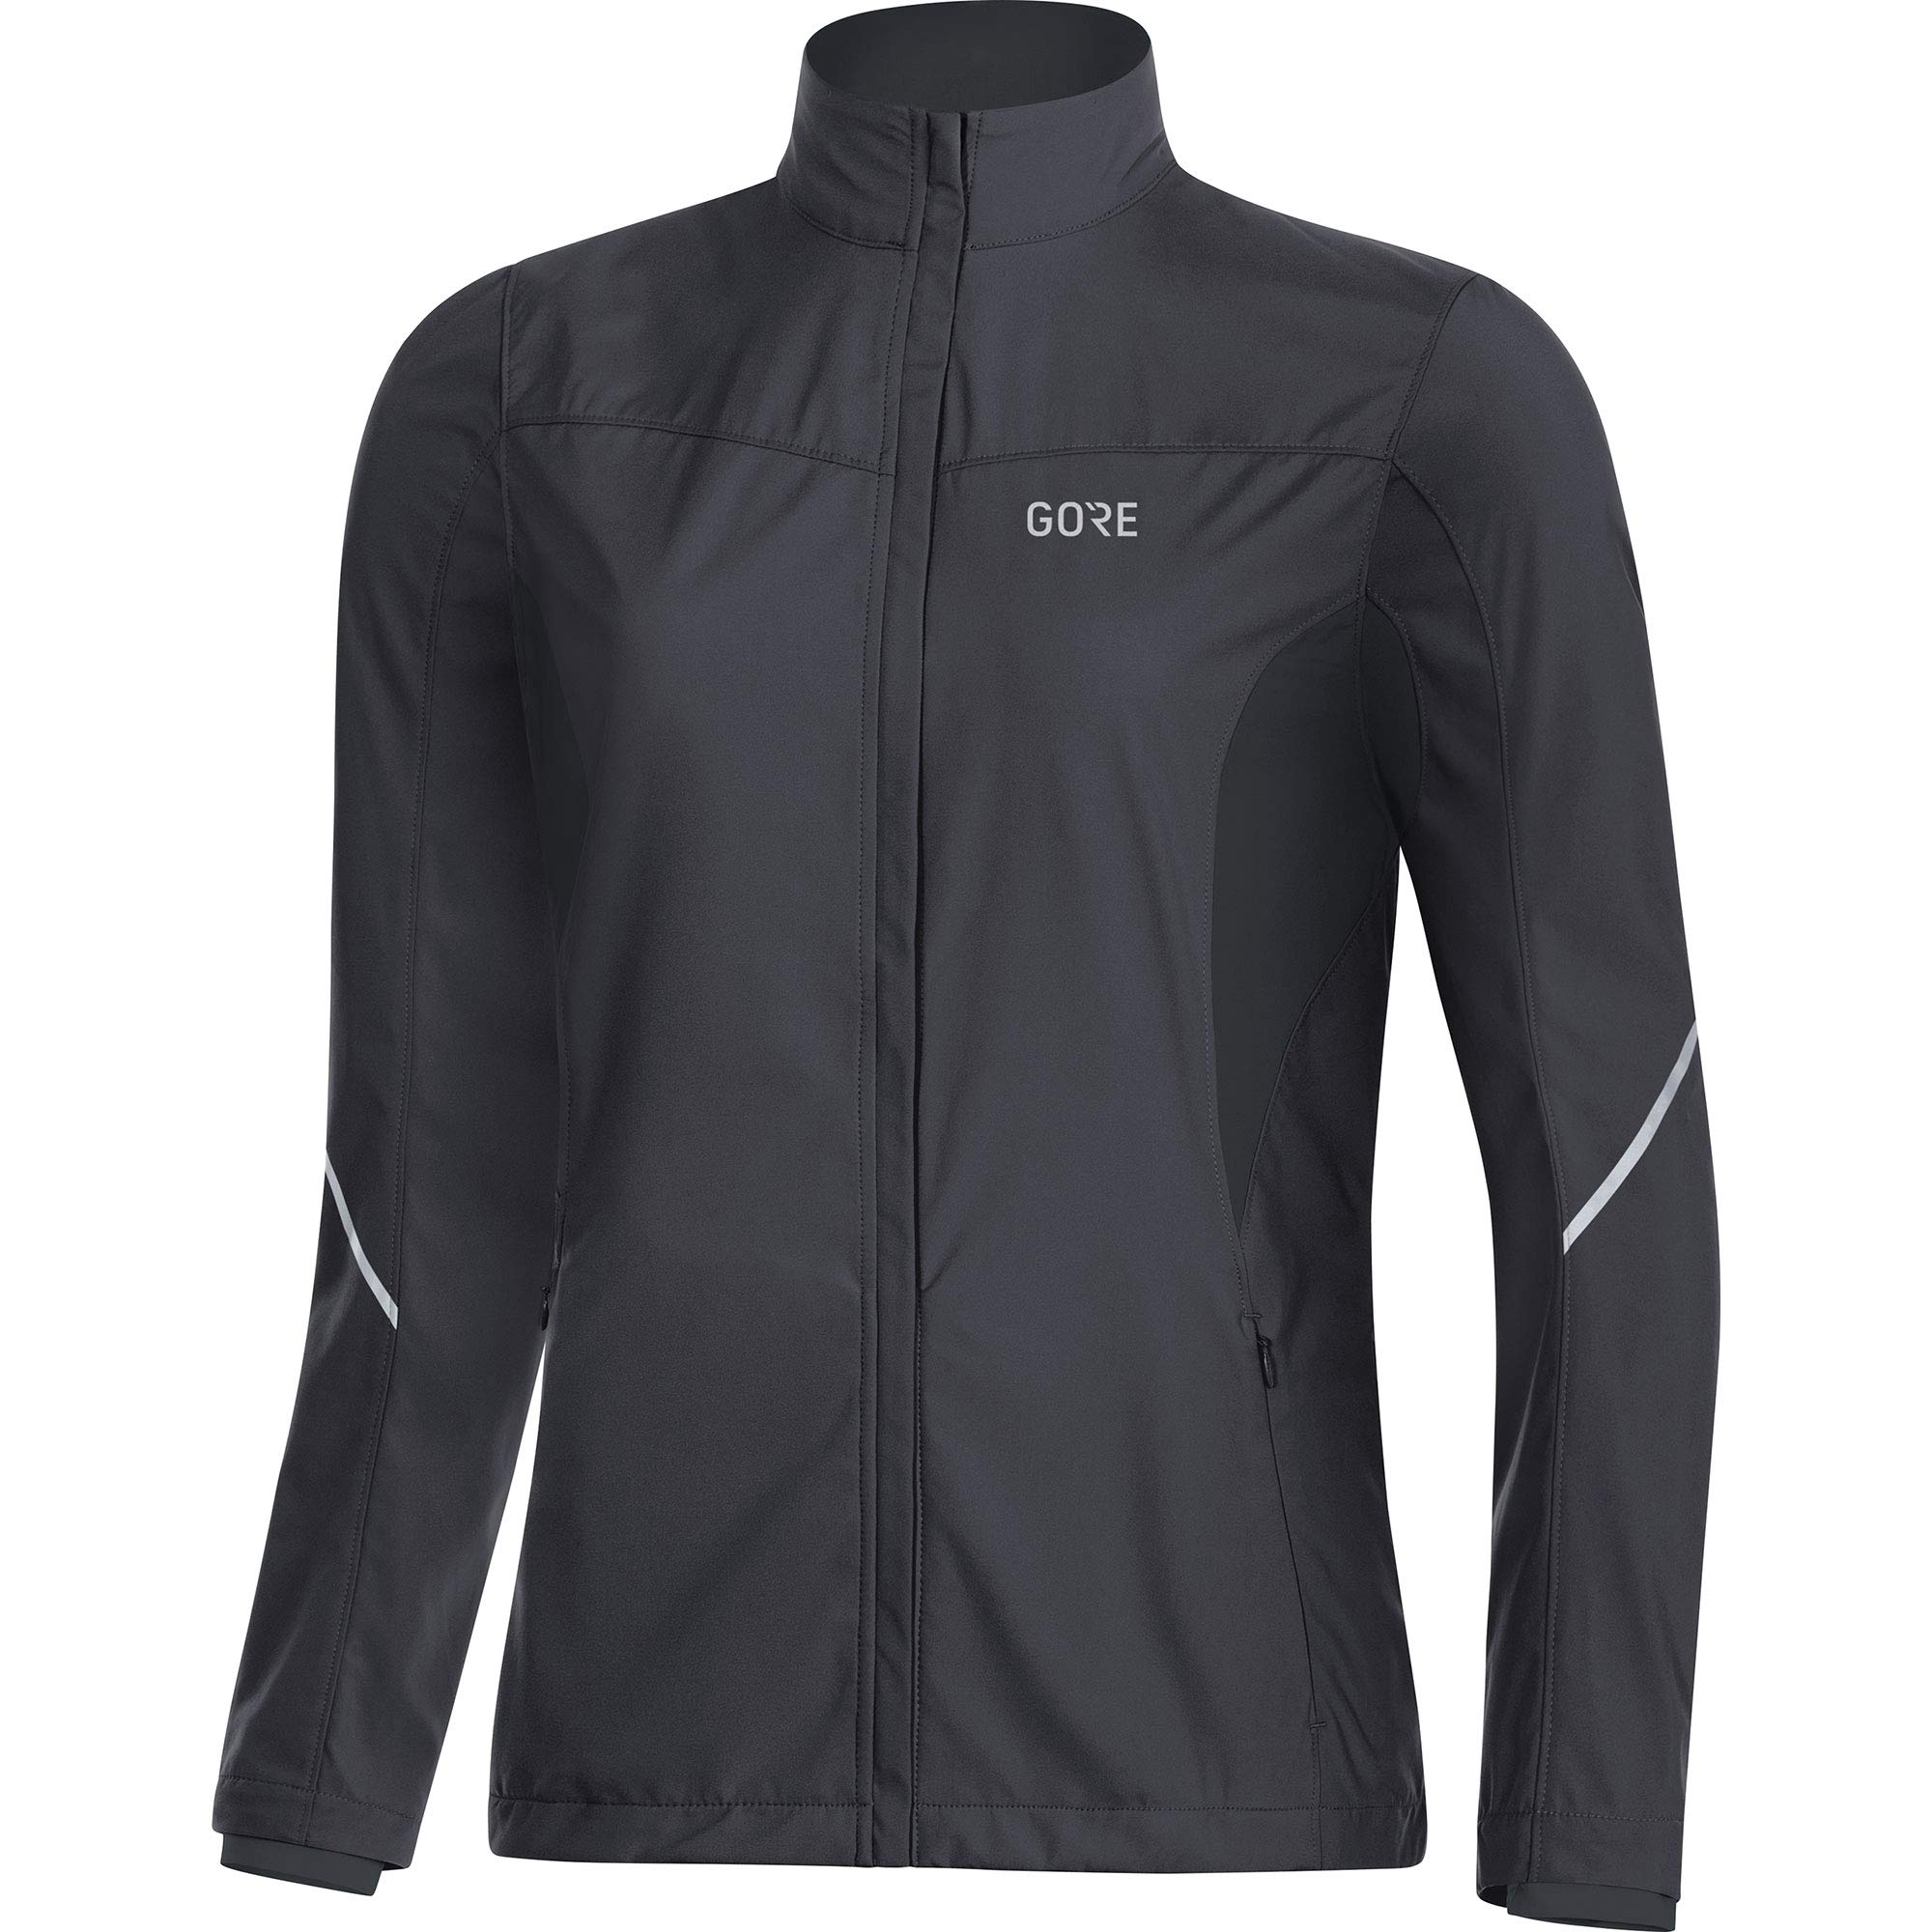 Gore Women's R3 Wmn Partial Gws Jacket,  terra grey/black,  XS